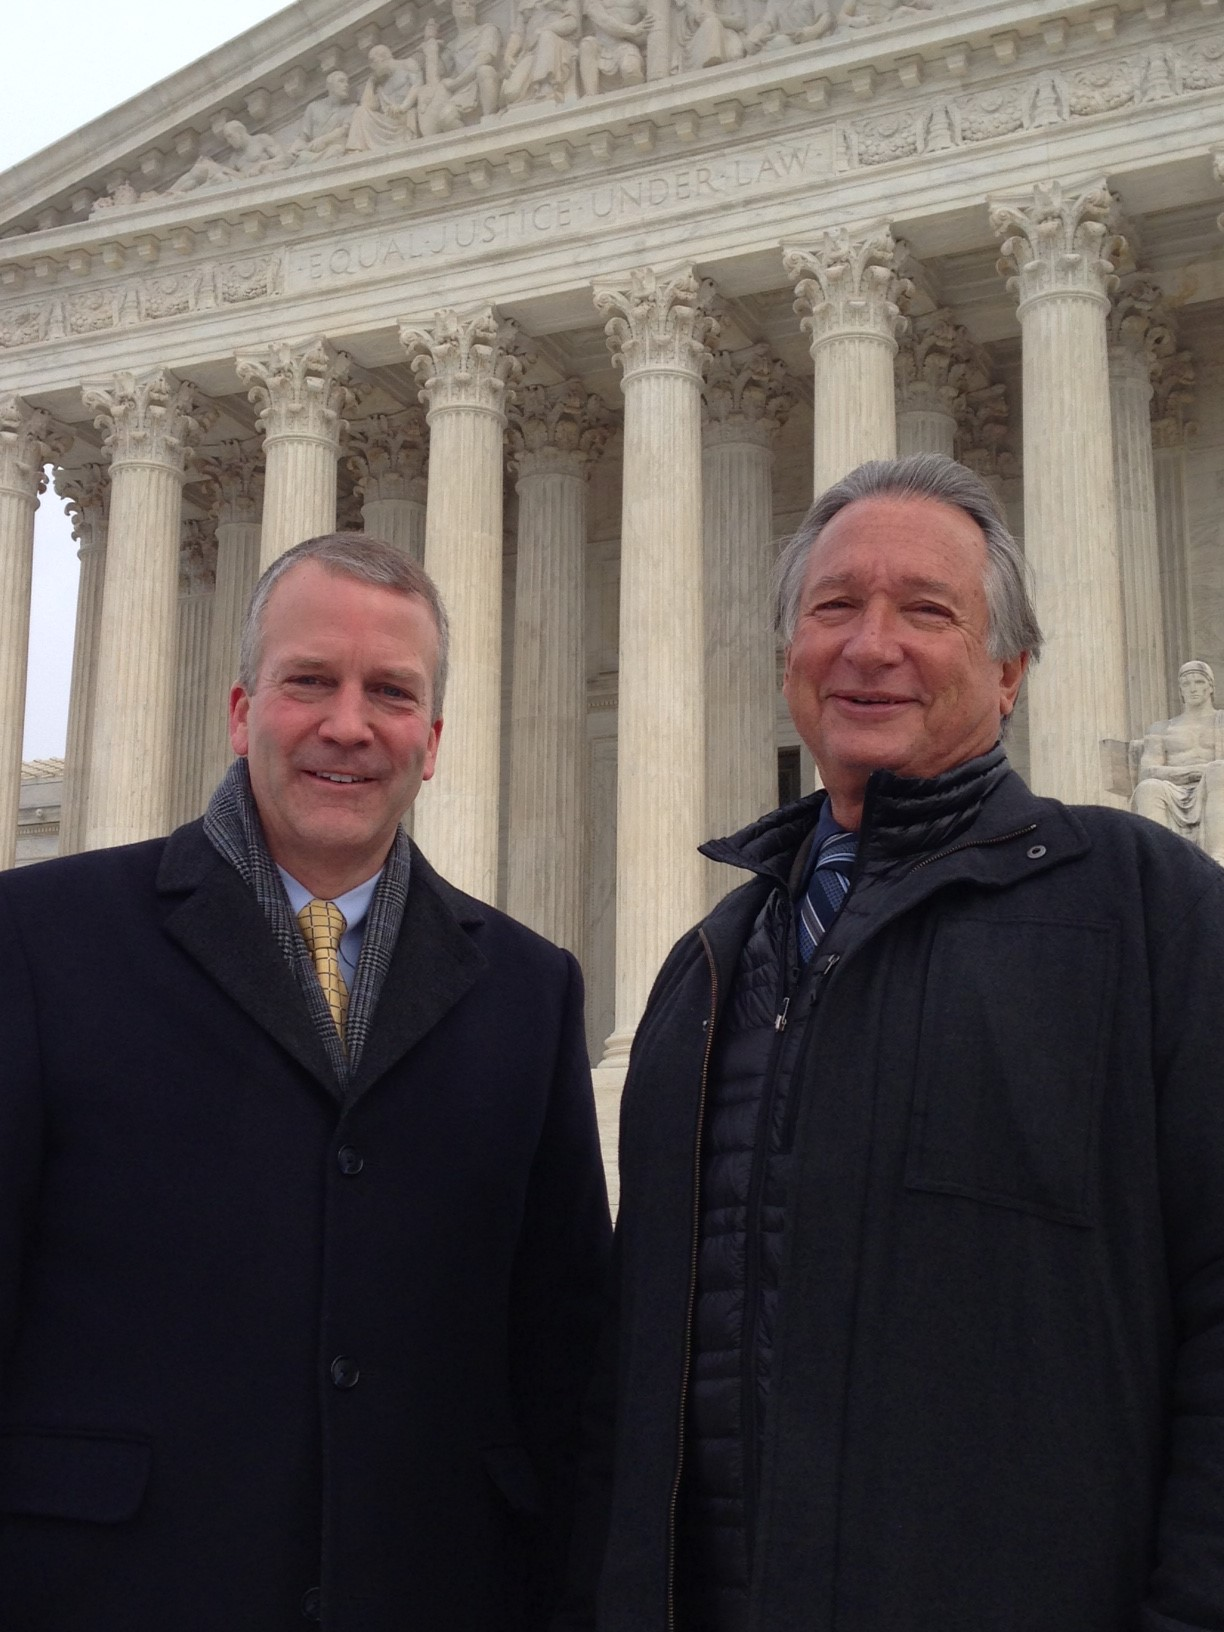 Alaska Senator Dan Sullivan (L) and Rod Arno, executive director of the Alaska Outdoor Council, in front of the US Supreme Court, Jan 20, 2016. (M. Snowiss\VOA)